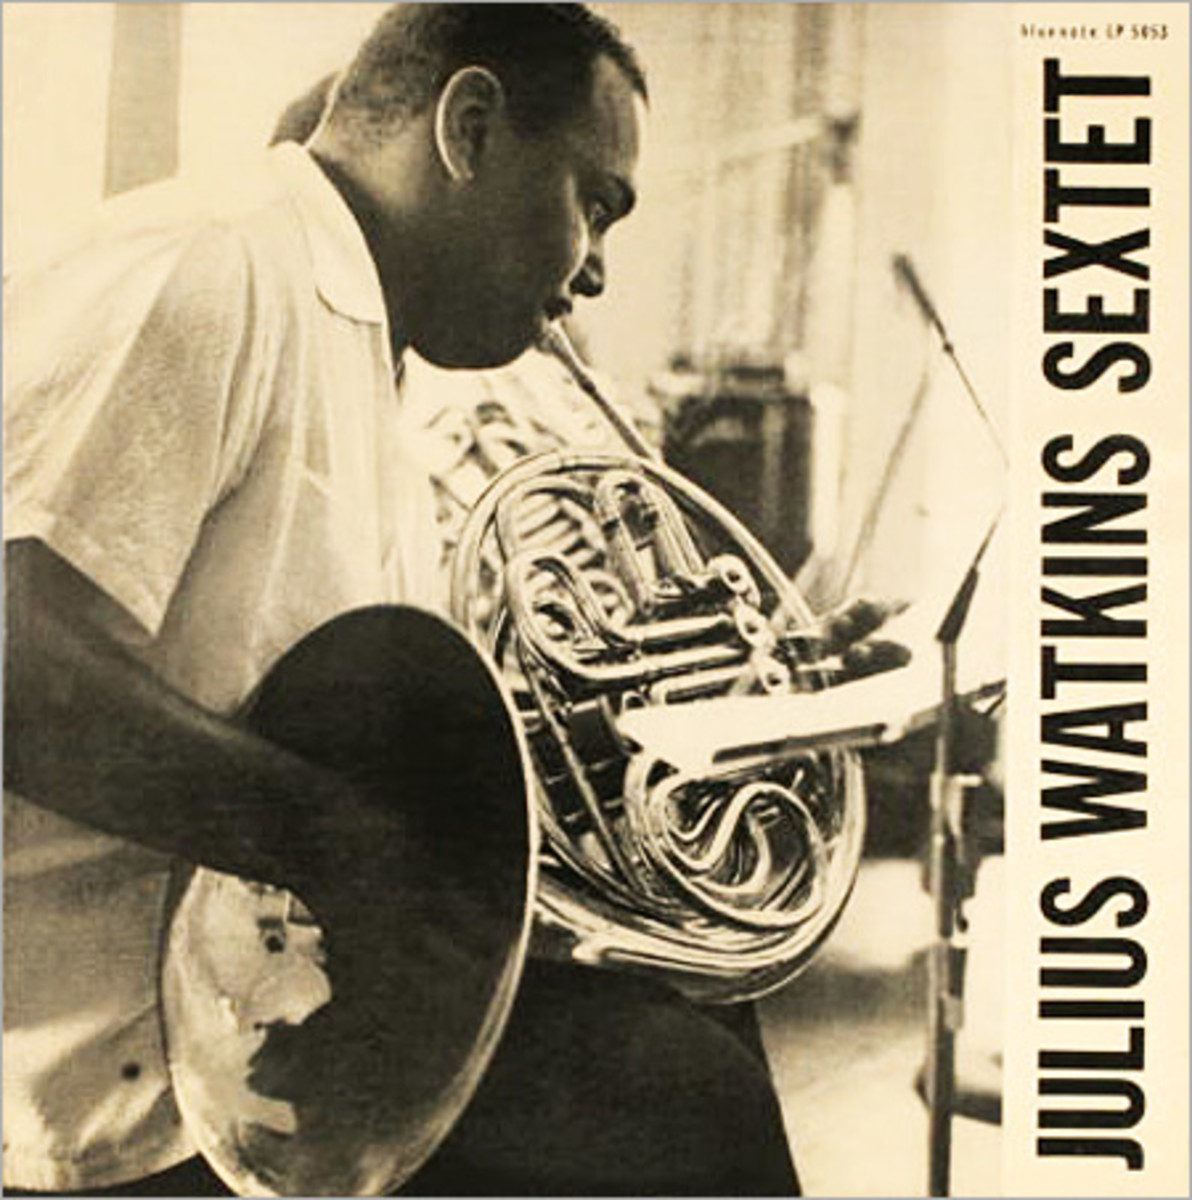 "Julius Watkins ""Julius Watkins Sextet"" Blue Note Records BLP 5053 10"" LP Vinyl Microgroove Record (1955) Album Cover Design and Photo by Bill Hughes"